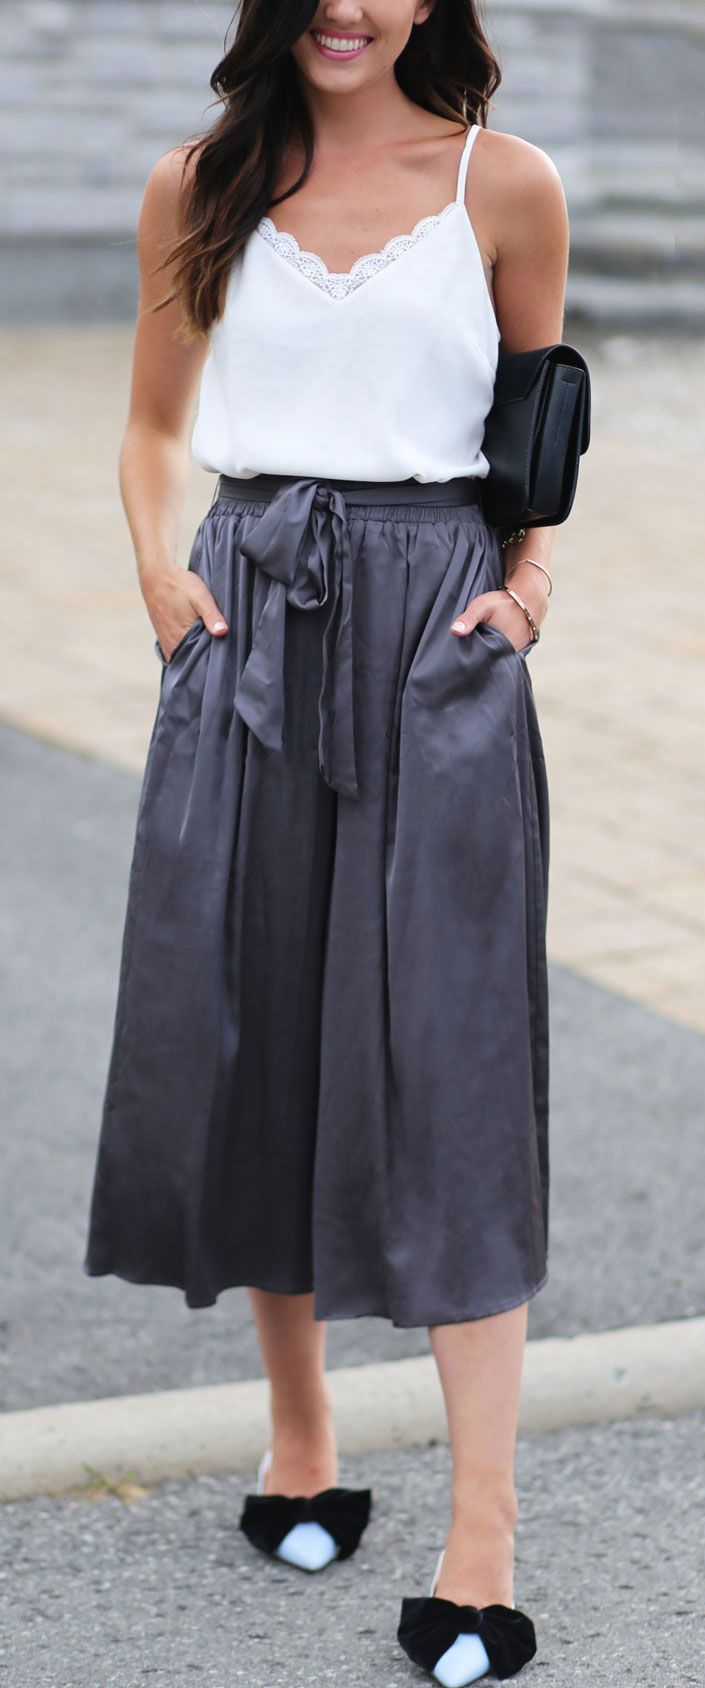 LIVING in culotte pants these days! They are THE MOST COMFORTABLE, and these satin grey ones are under $50!! Paired them with a white tank top and adorable kitten heels, perfect for the end of summer and start of fall! #effortlesslychic